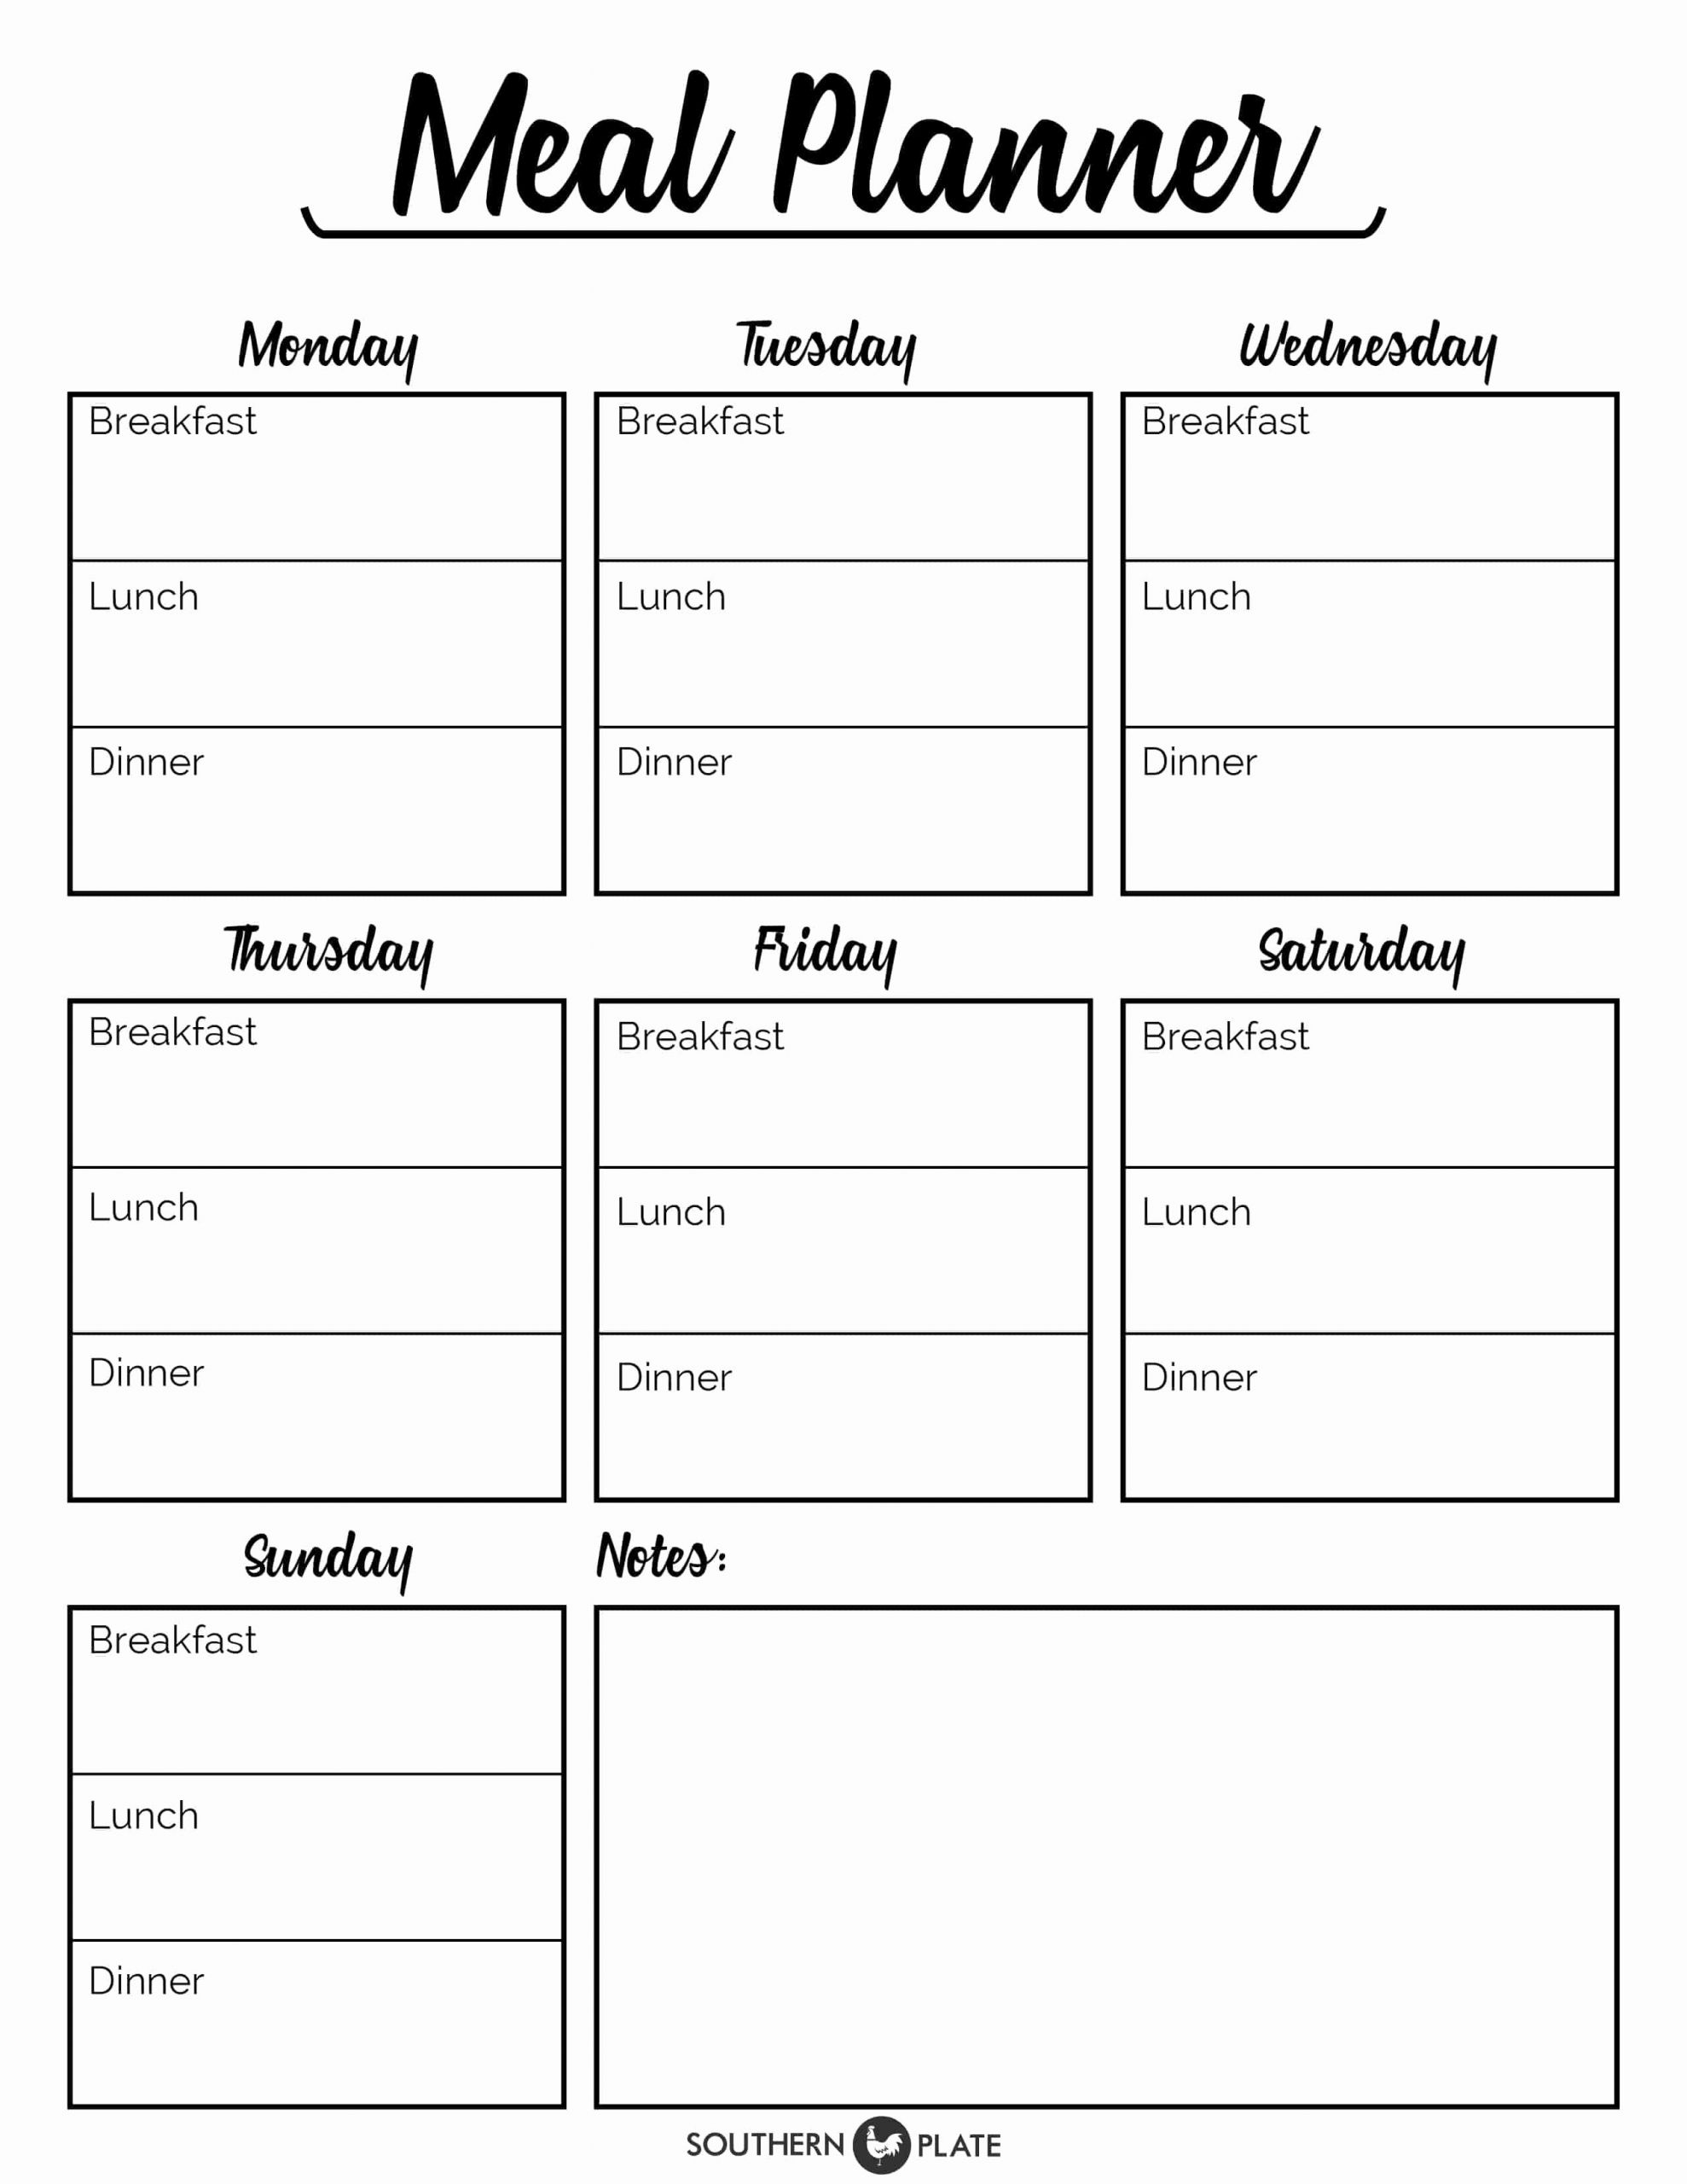 Lunch Menu Template Free Fresh Free Printable Menu Planner Sheet southern Plate